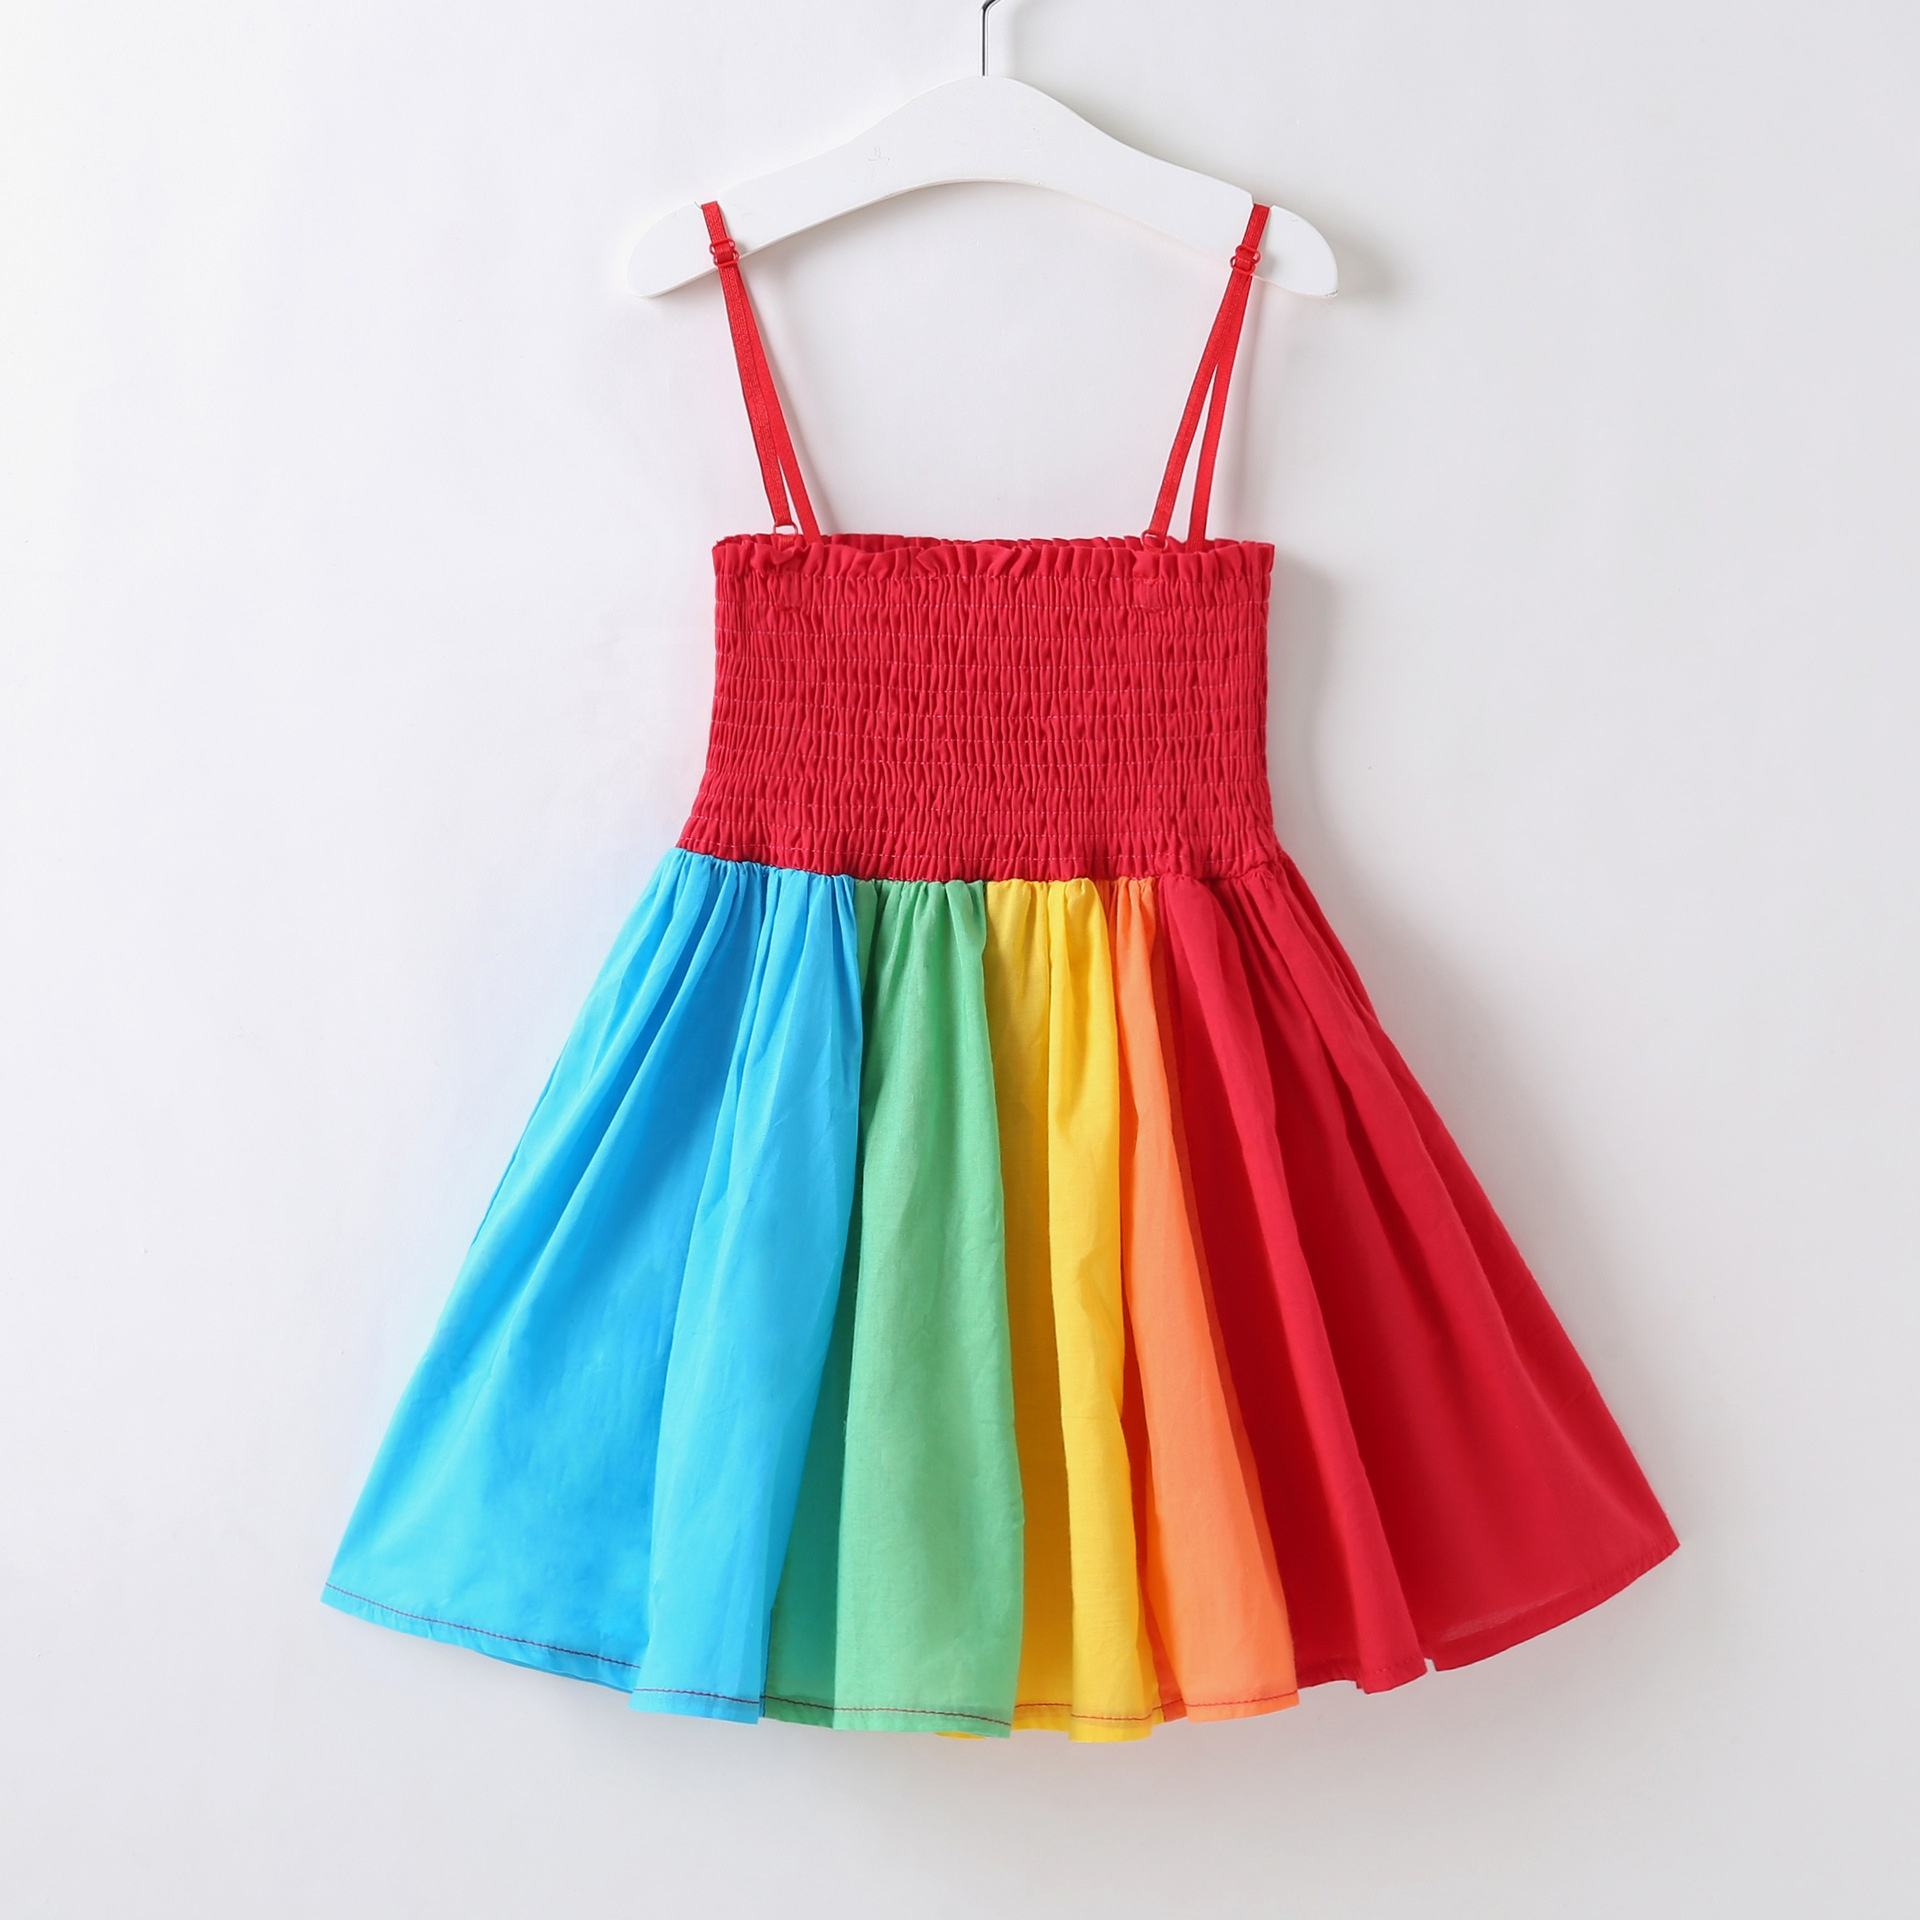 Hot Selling Baby Girls Frocks Colorful Princess Summer Cotton Red Dress For Holiday Wear